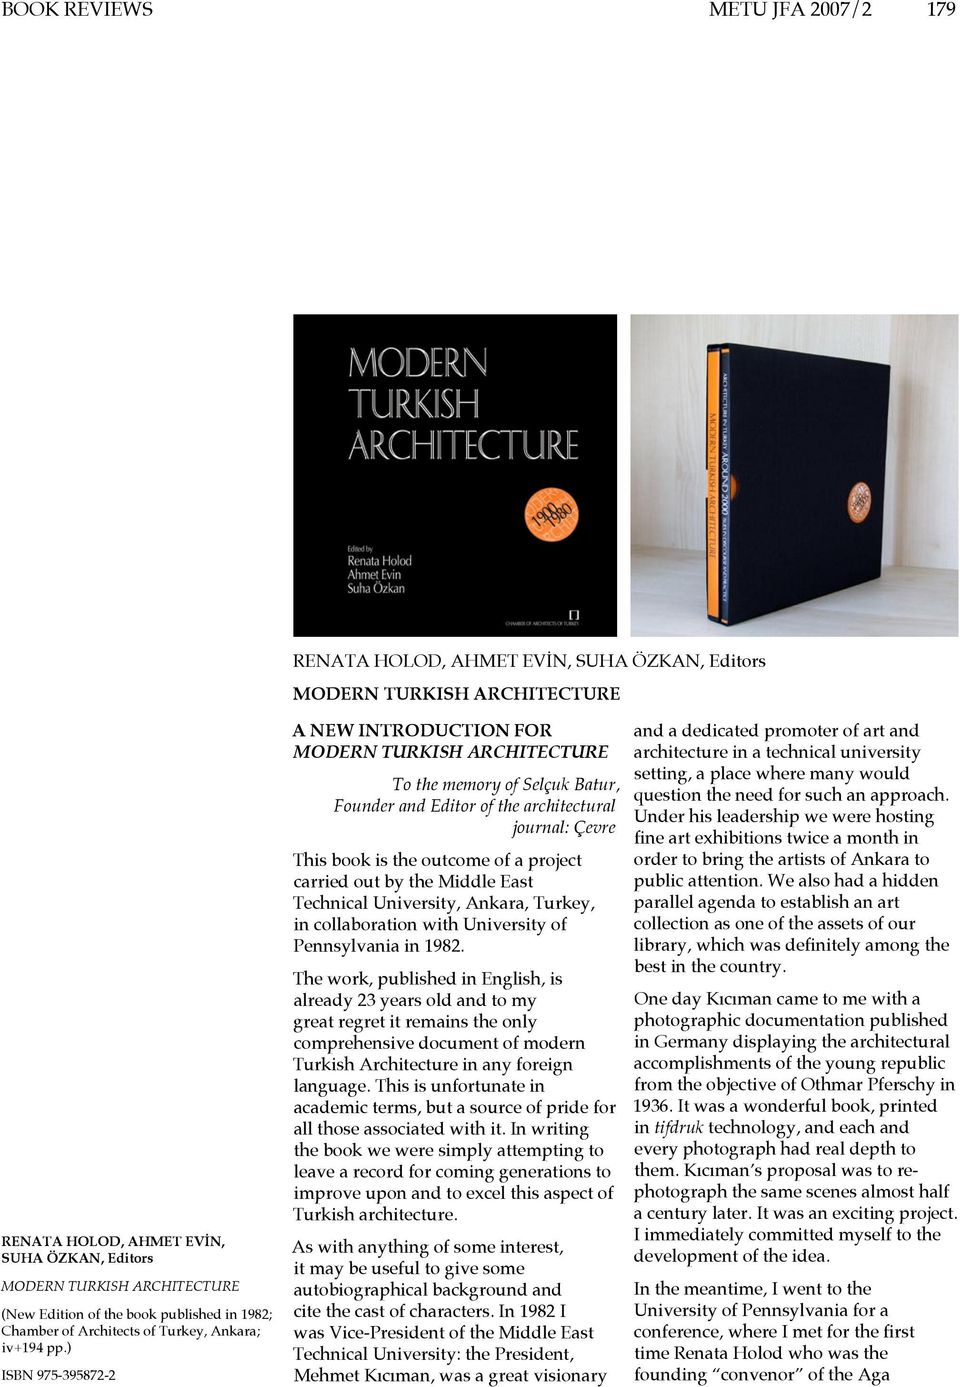 ) ISBN 975-395872-2 A NEW INTRODUCTION FOR MODERN TURKISH ARCHITECTURE To the memory of Selçuk Batur, Founder and Editor of the architectural journal: Çevre This book is the outcome of a project